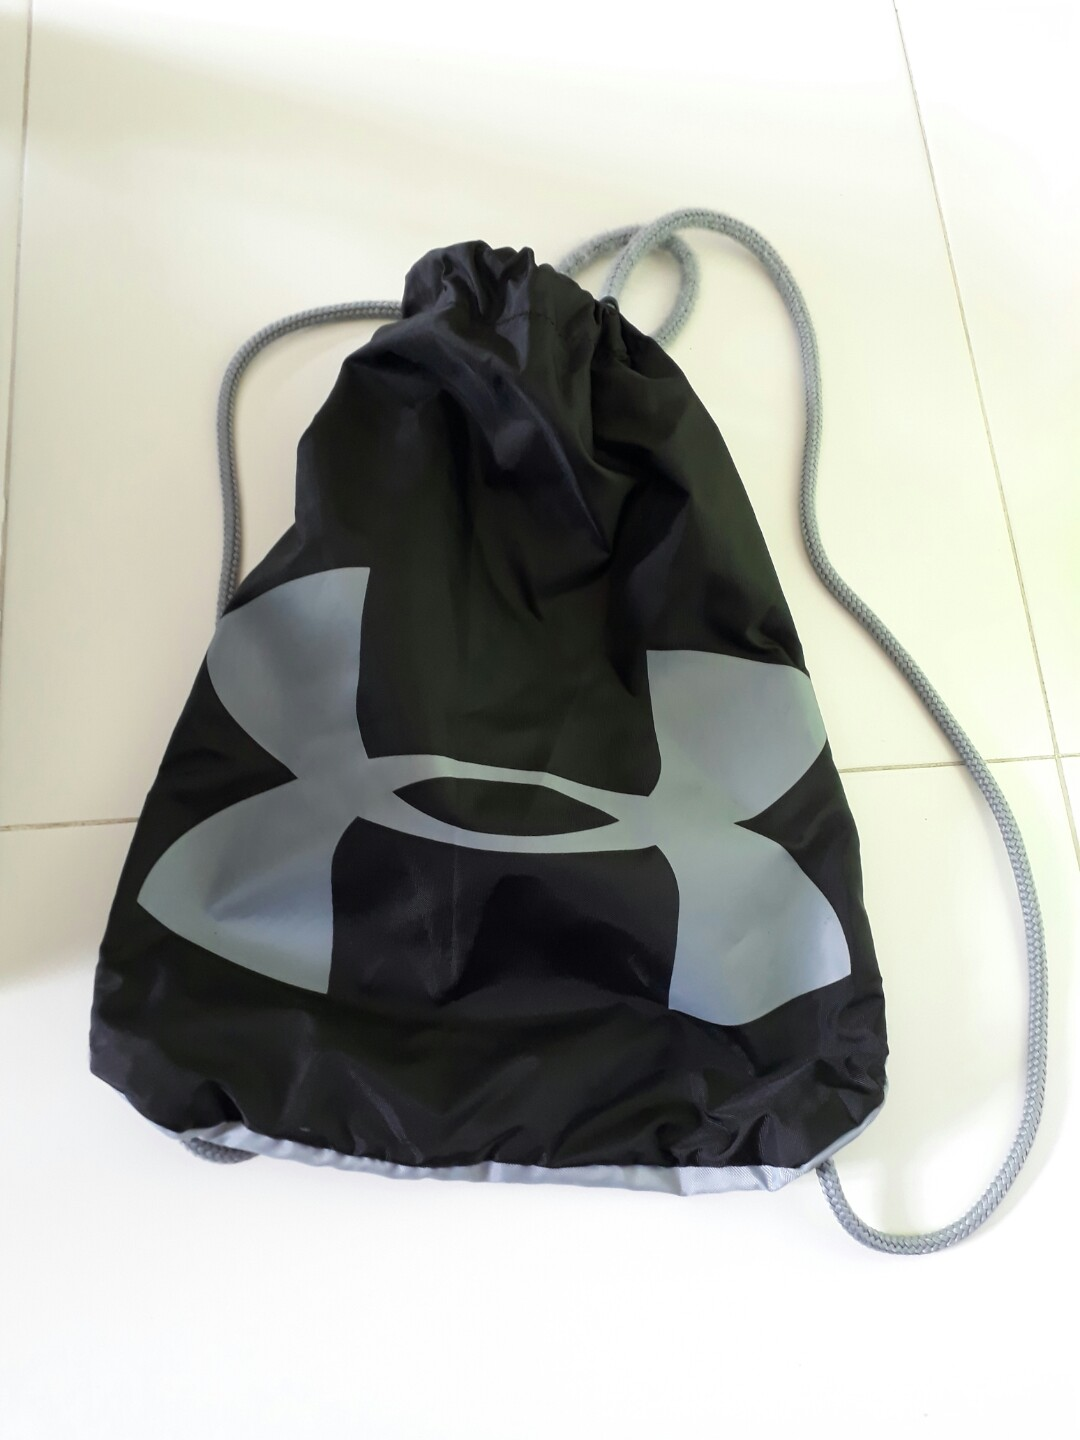 a028d7327c96 Preloved Under Armour Drawstring Bag